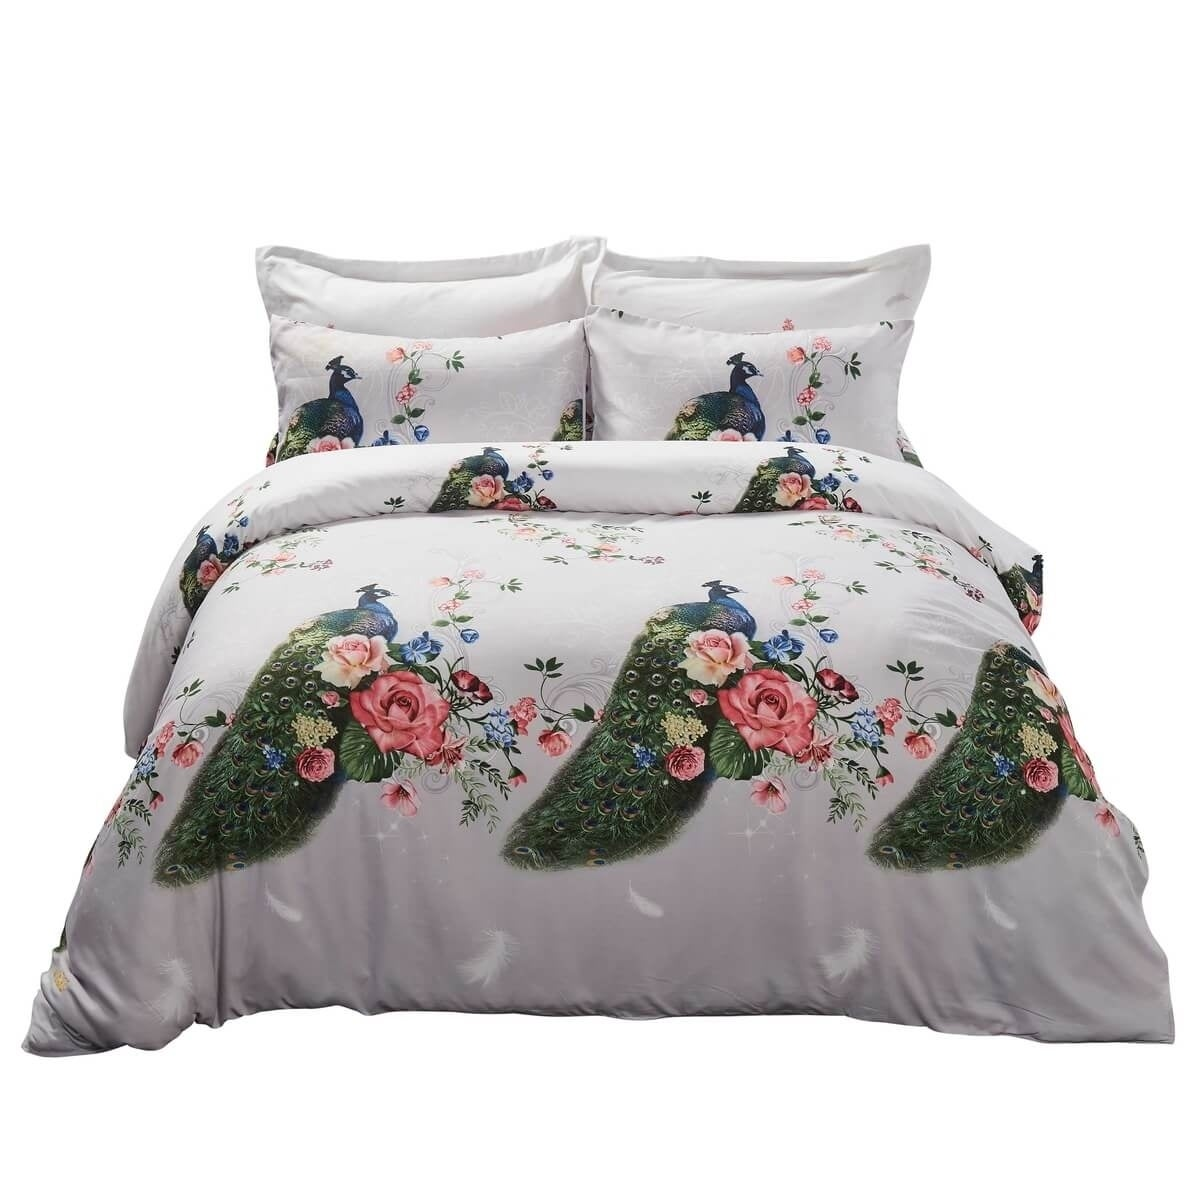 6 Piece Duvet Cover Set w. Fitted Sheet - Peacock Luxury Mul